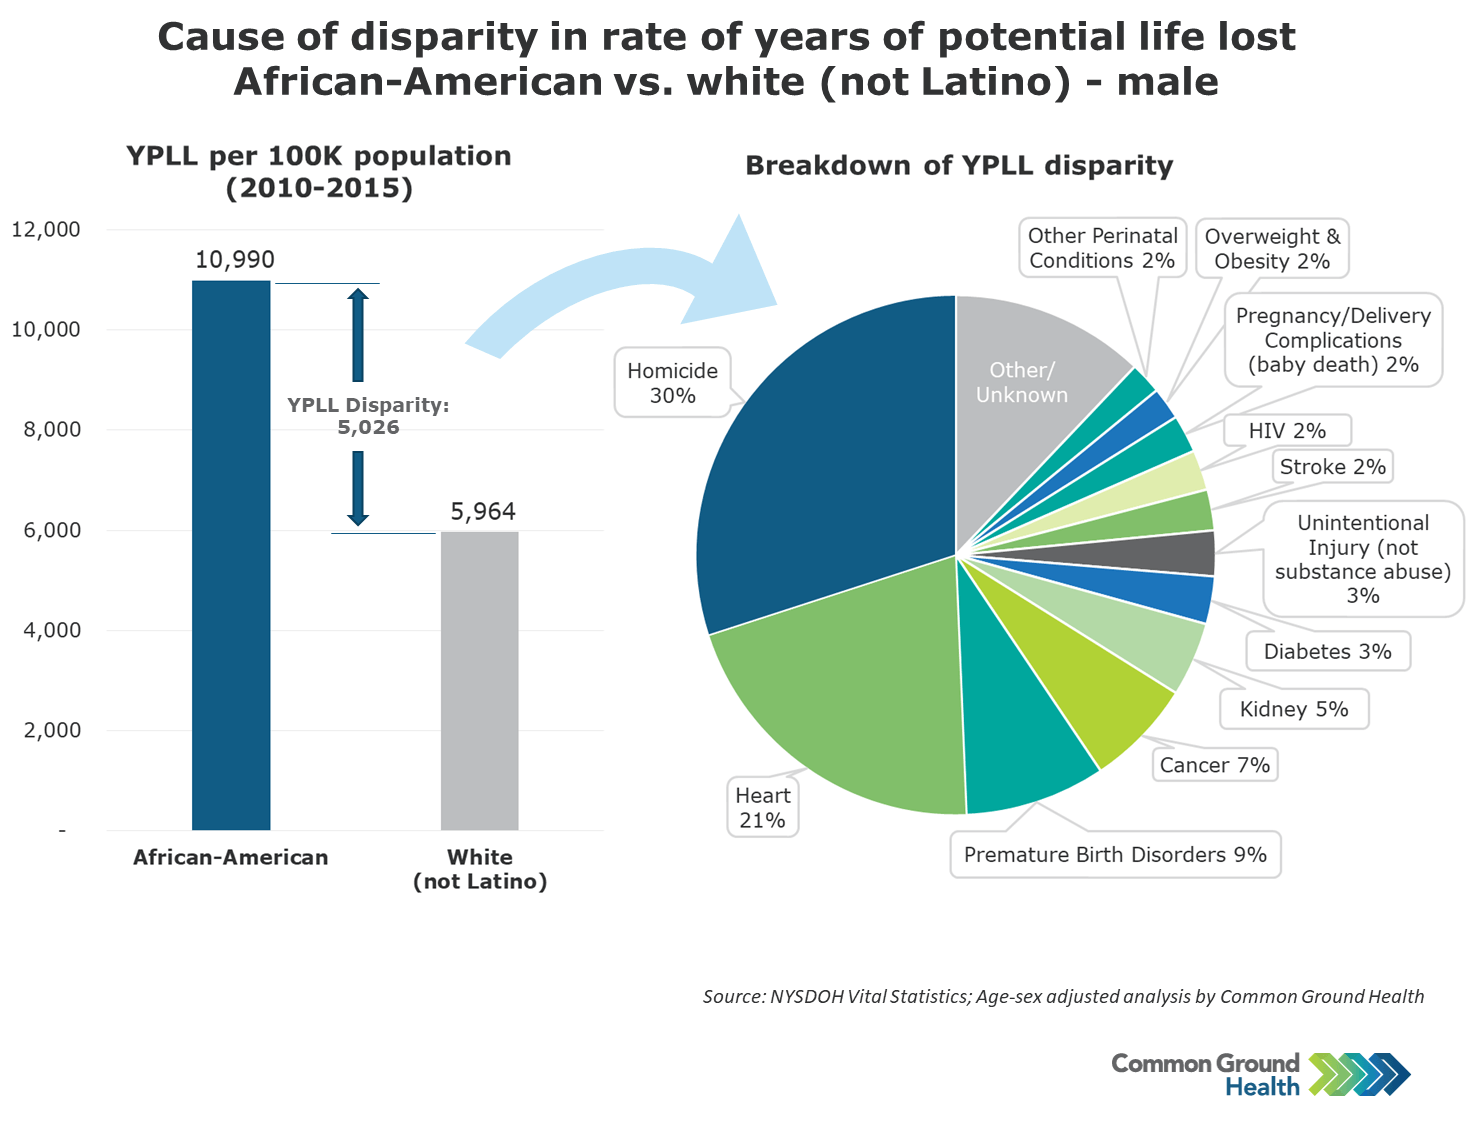 Cause of Disparity in Rate of Years of Potential Life Lost African-American vs White (not Latino) - Male